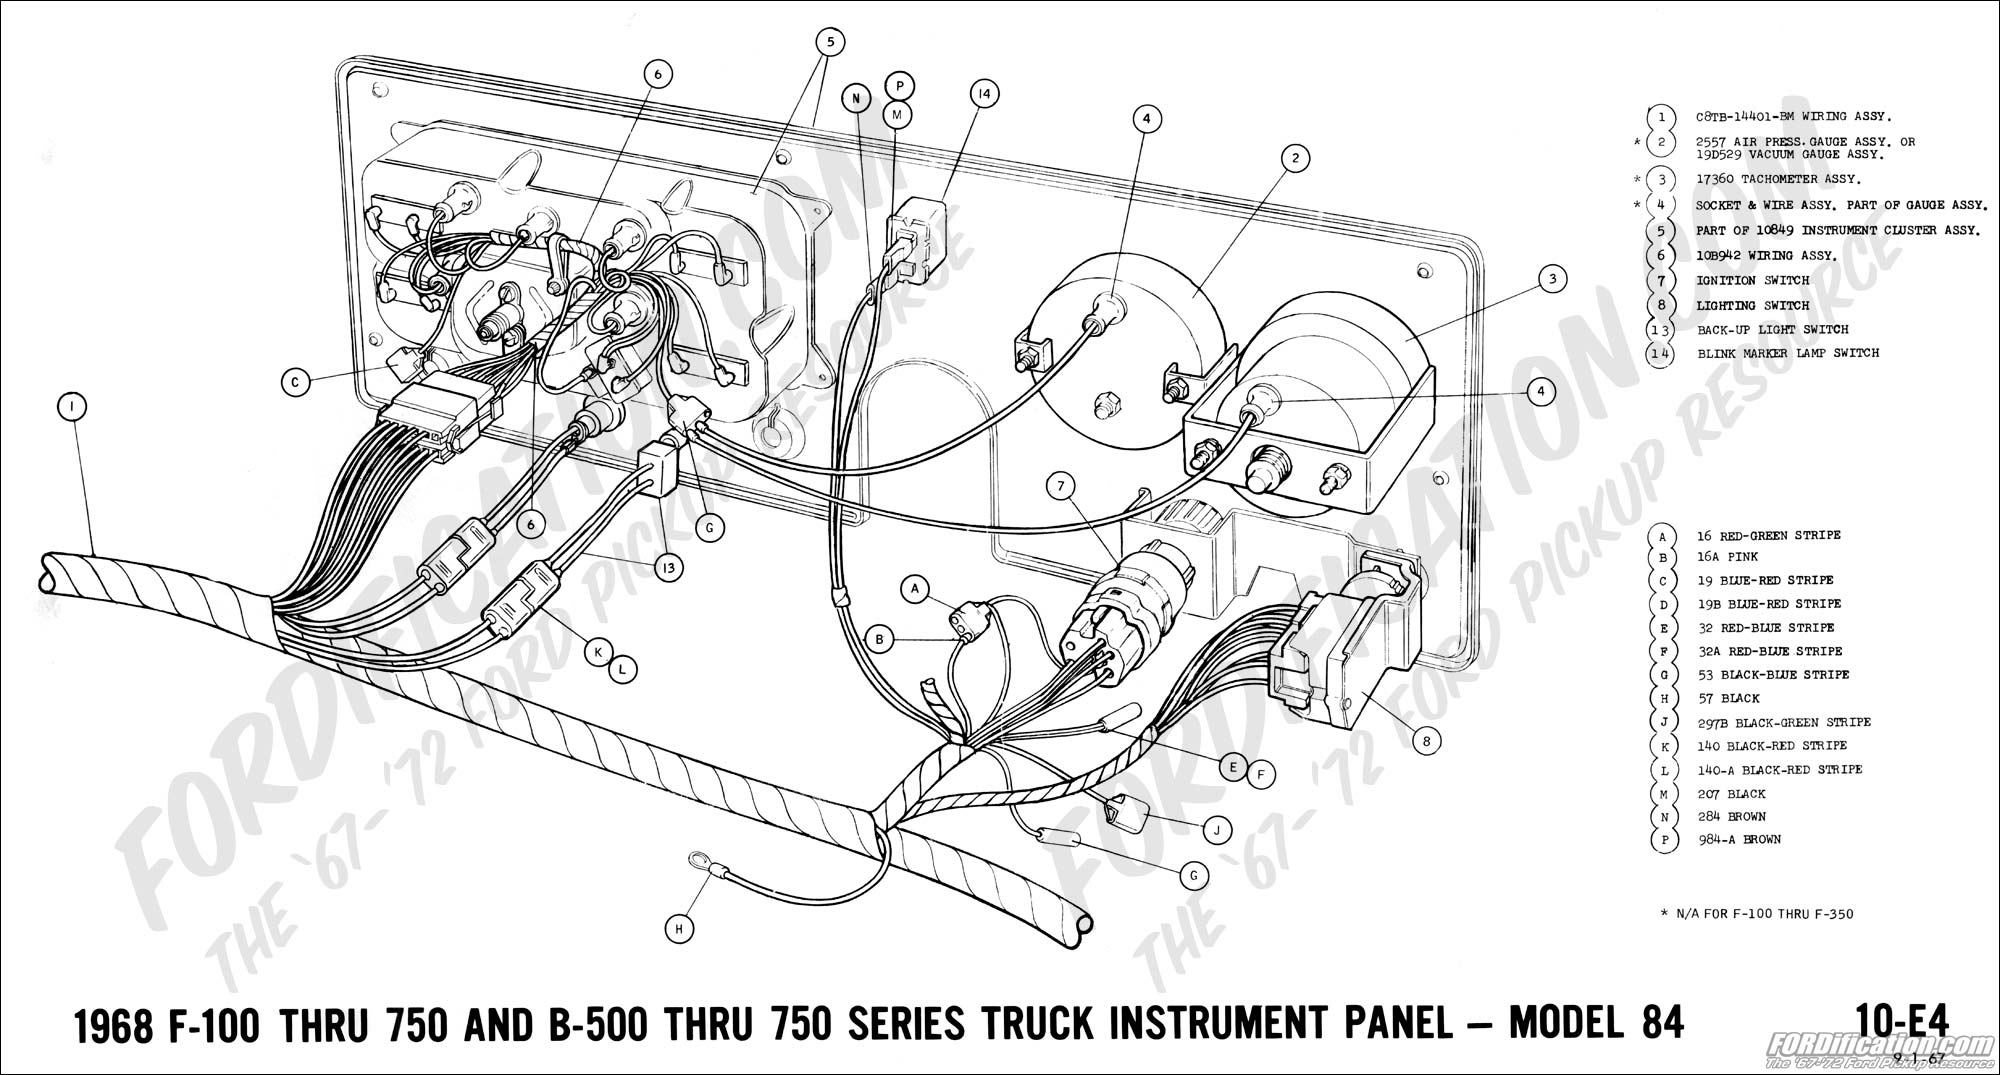 1968 ford f750 wiring diagram house wiring diagram symbols u2022 rh maxturner co 2000 Ford F650 Fuse Diagram 2002 F650 Fuse Diagram